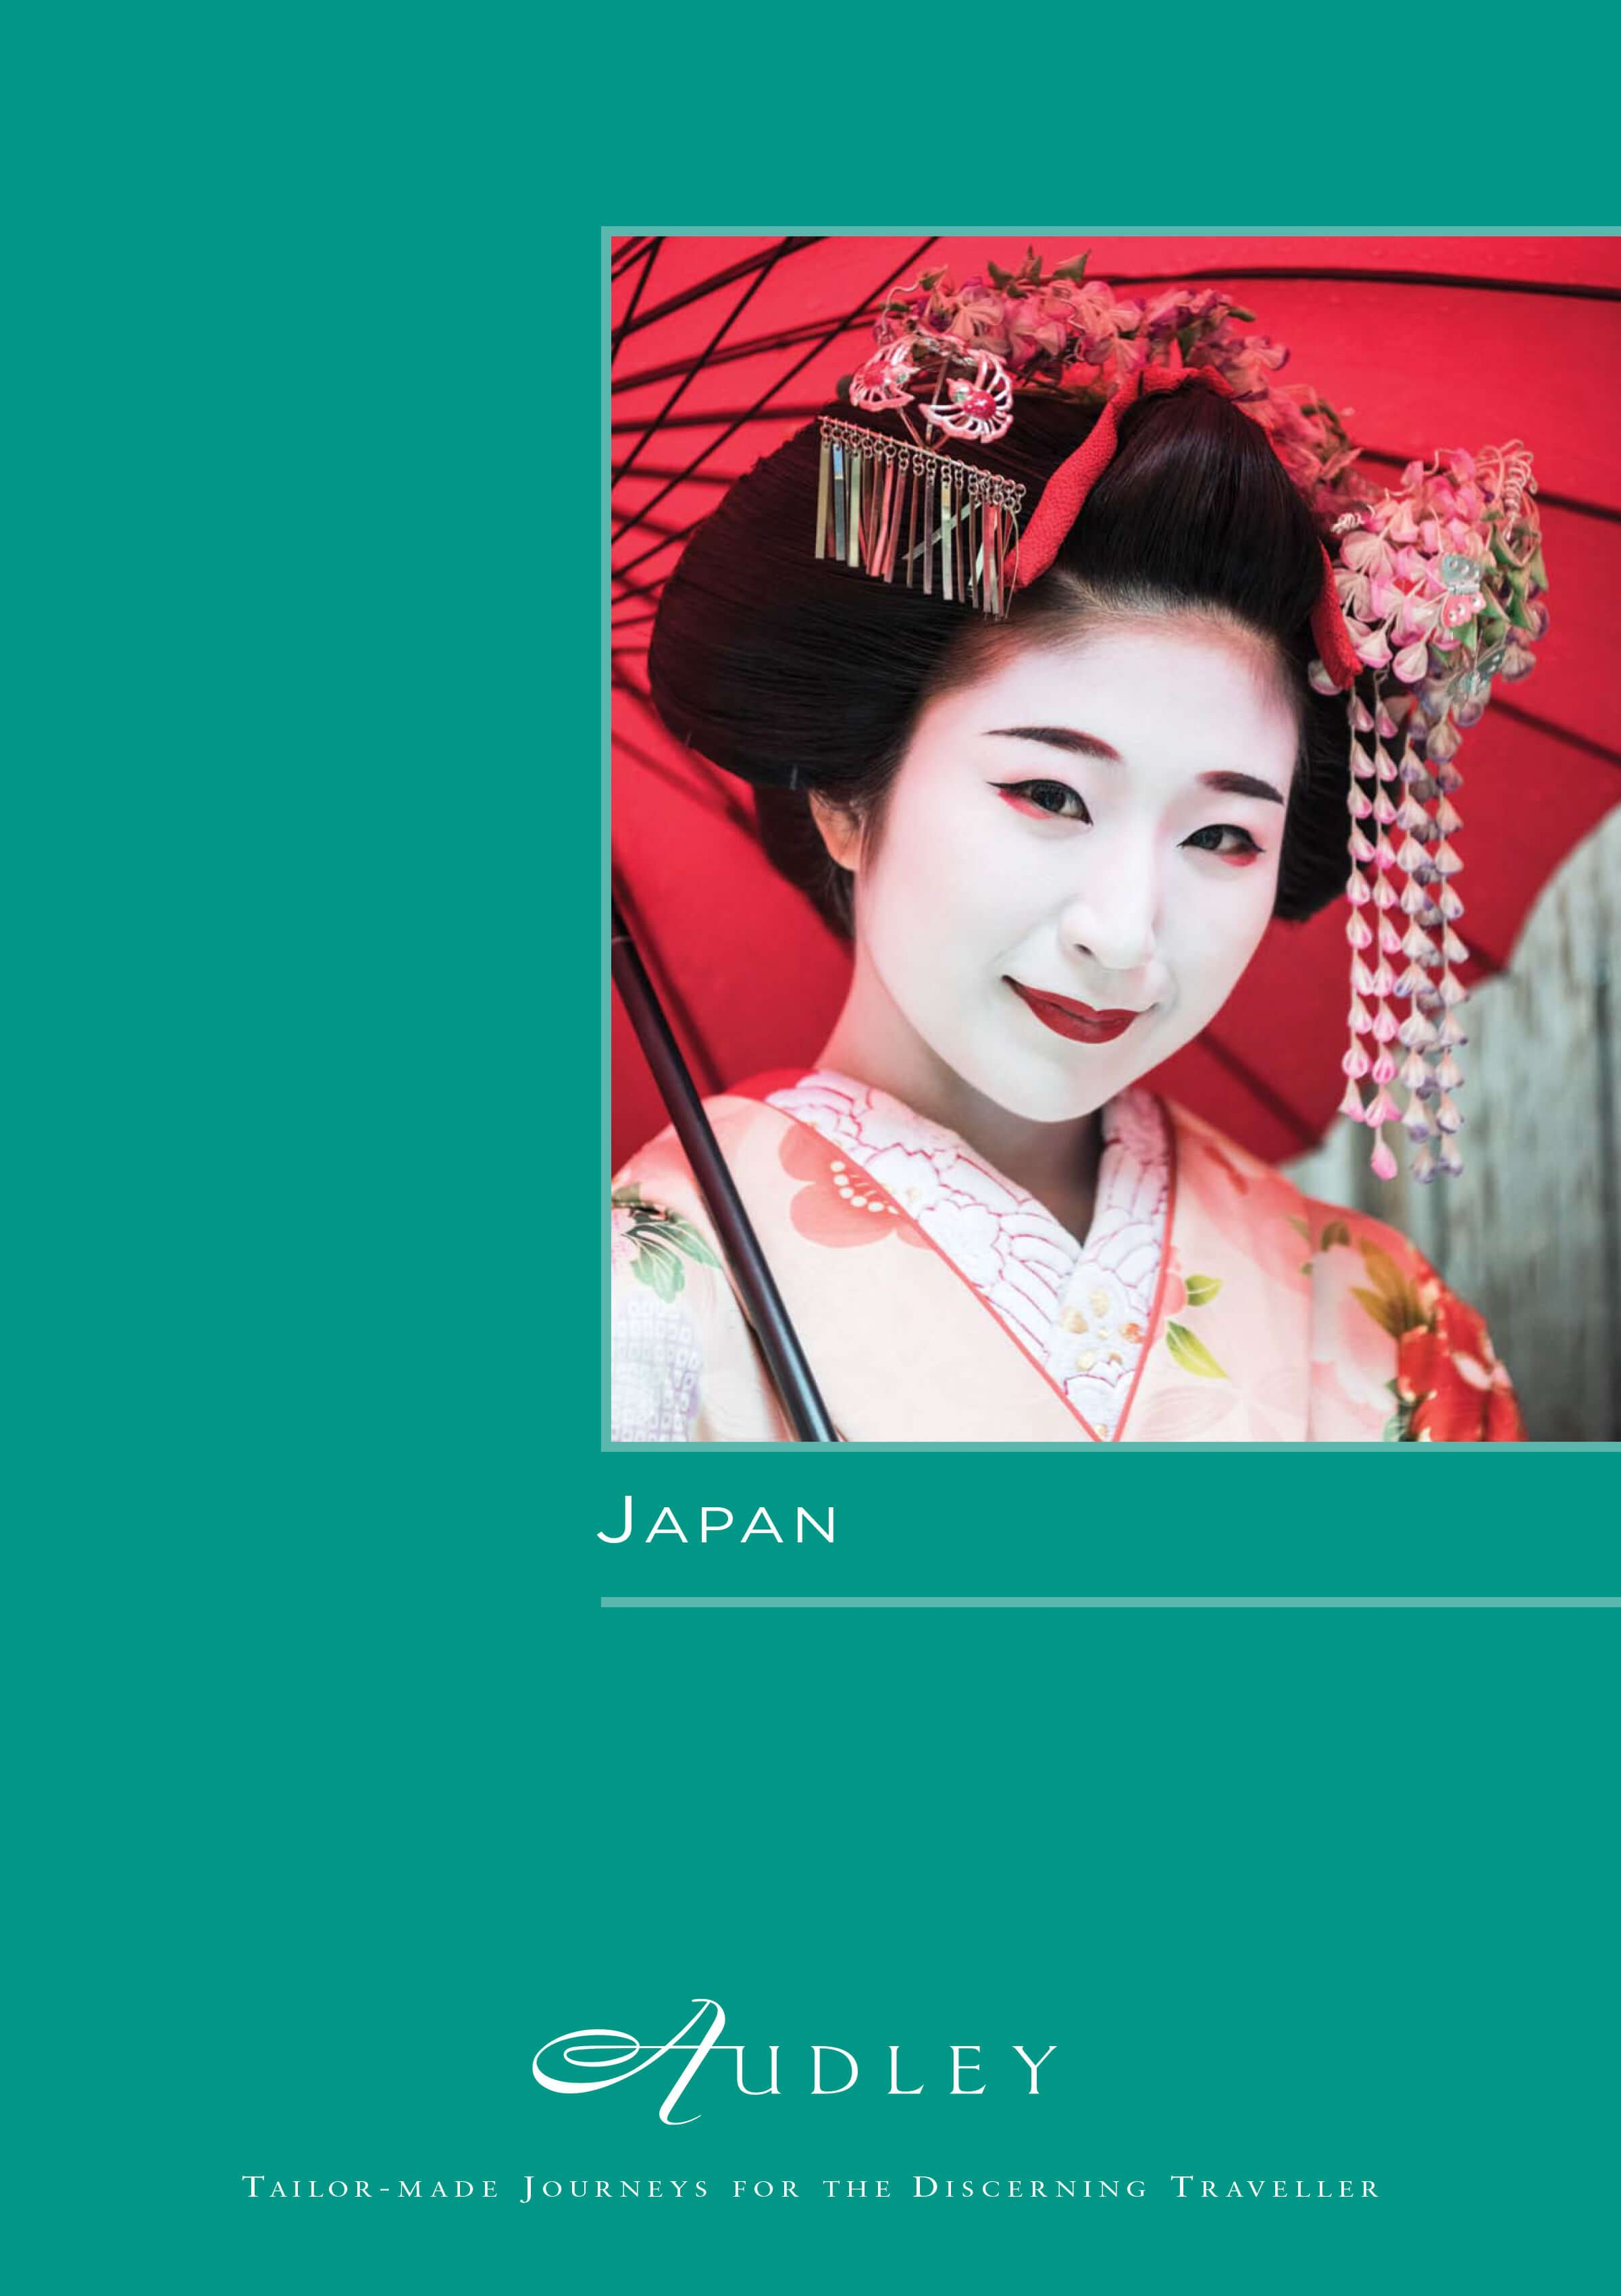 Audley Japan brochure